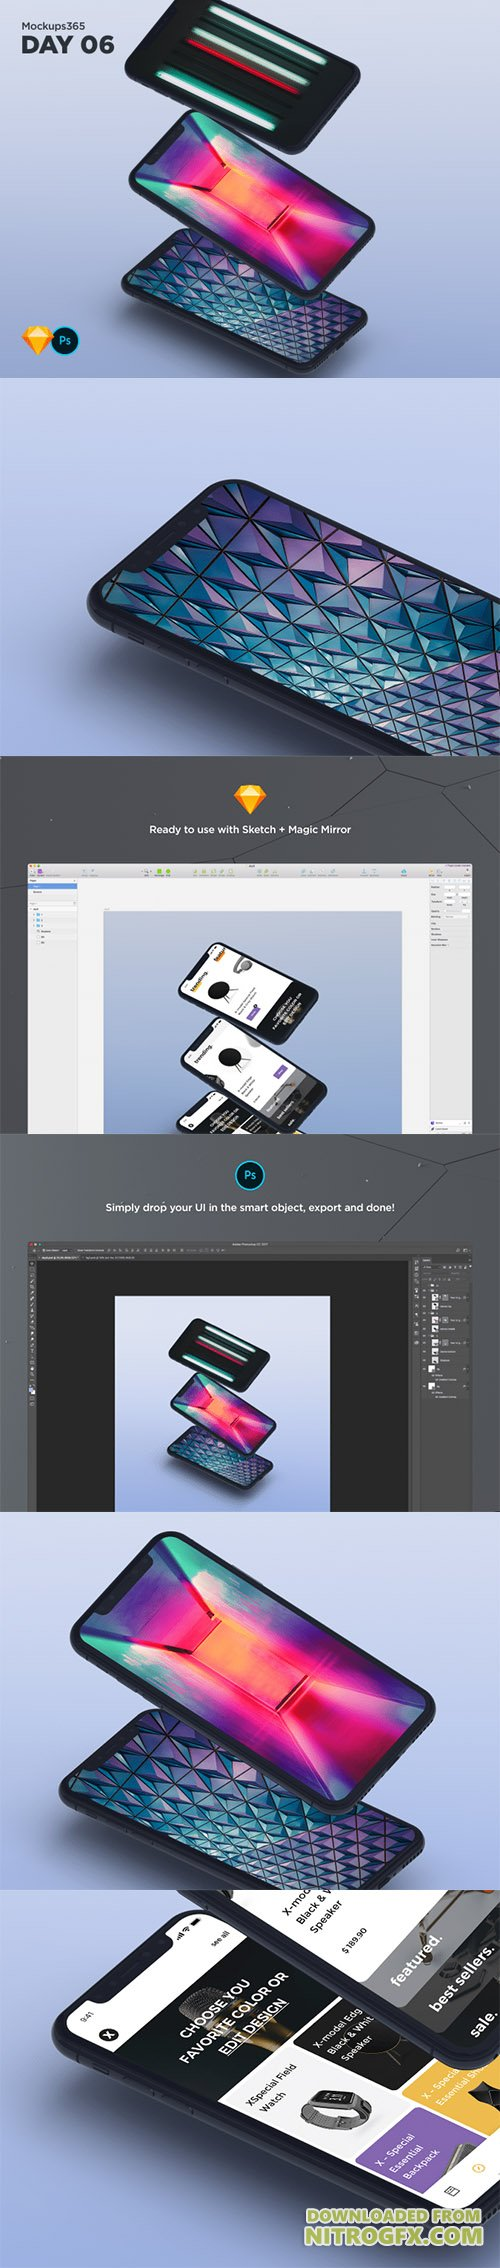 Mockups365: Day 6 - iPhone X cascading mockups for Sketch & Photoshop 4K